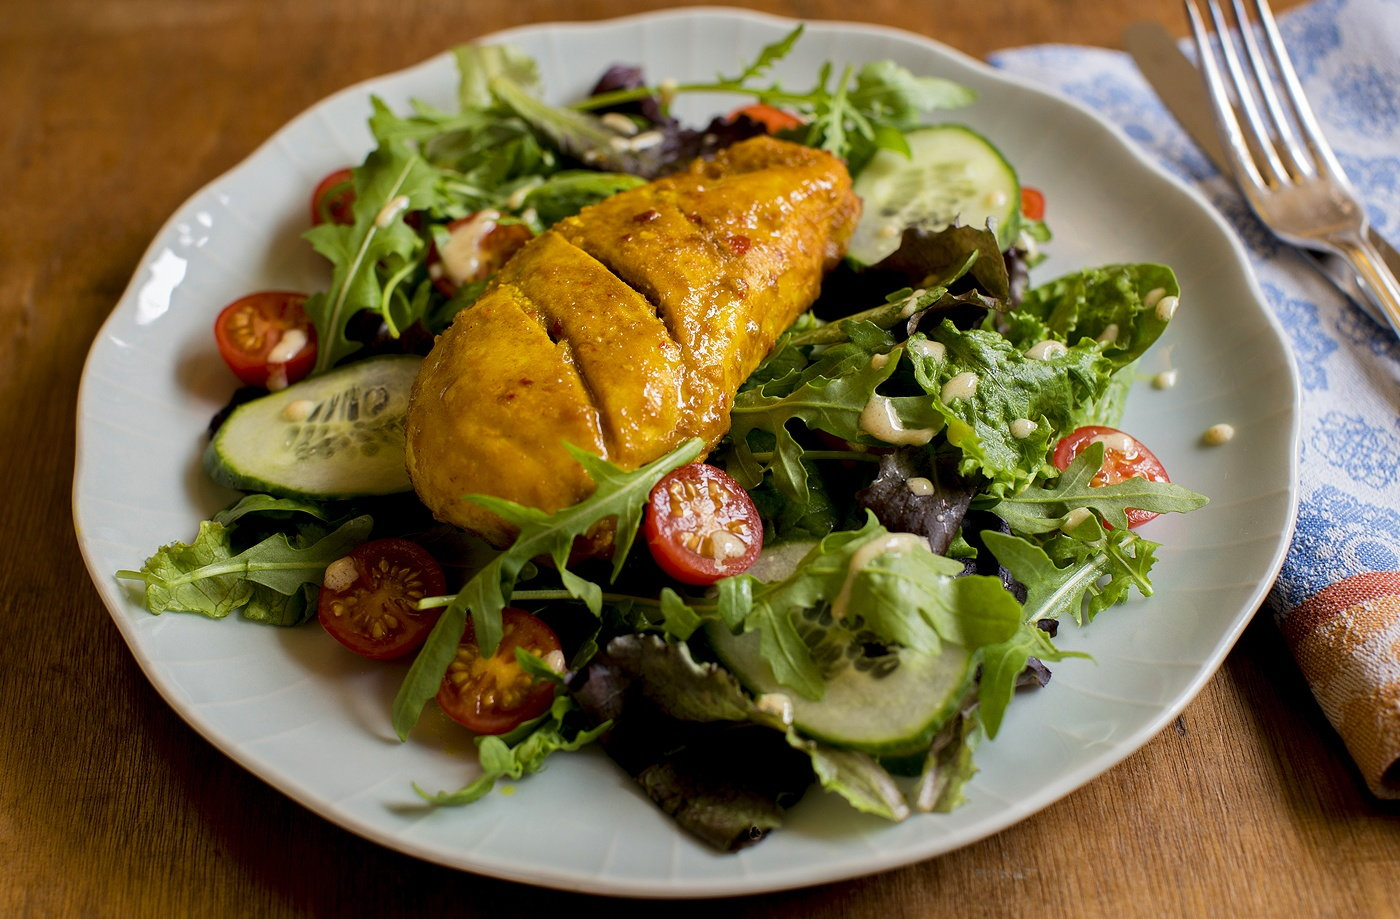 Spicy glazed chicken with a curry salad dressing recipe